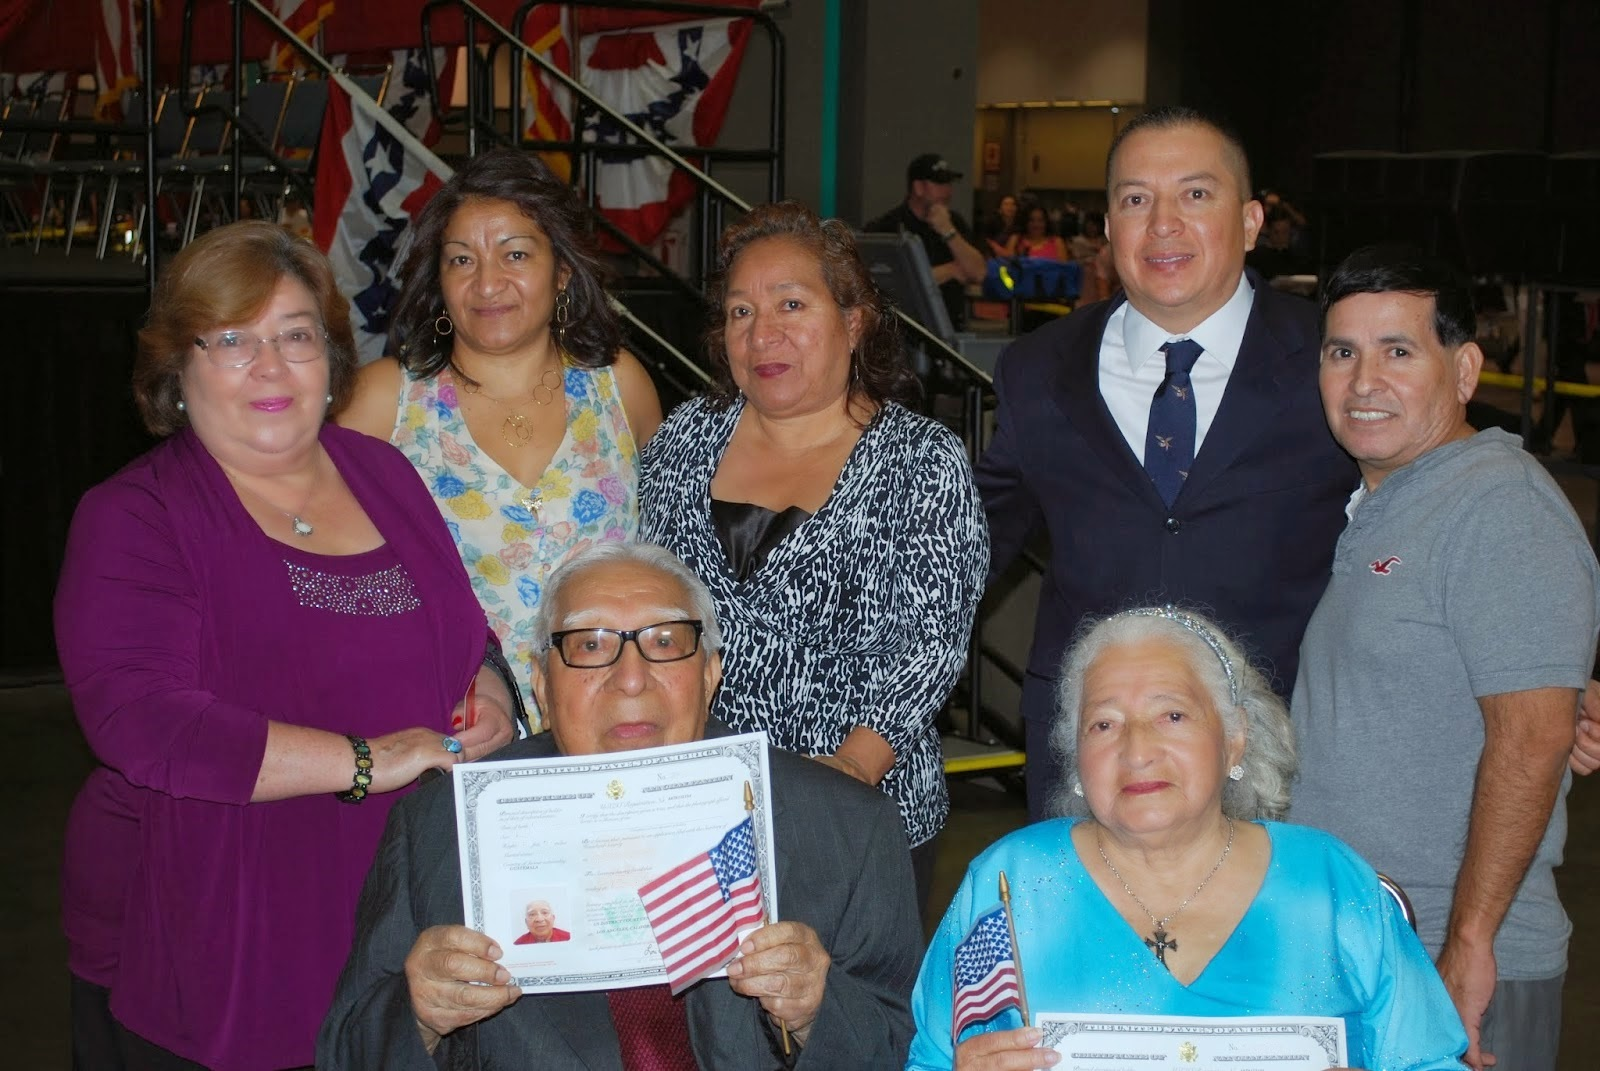 Jorge, surrounded by Rafaela and his family, proudly shows his Naturalization Certificate.